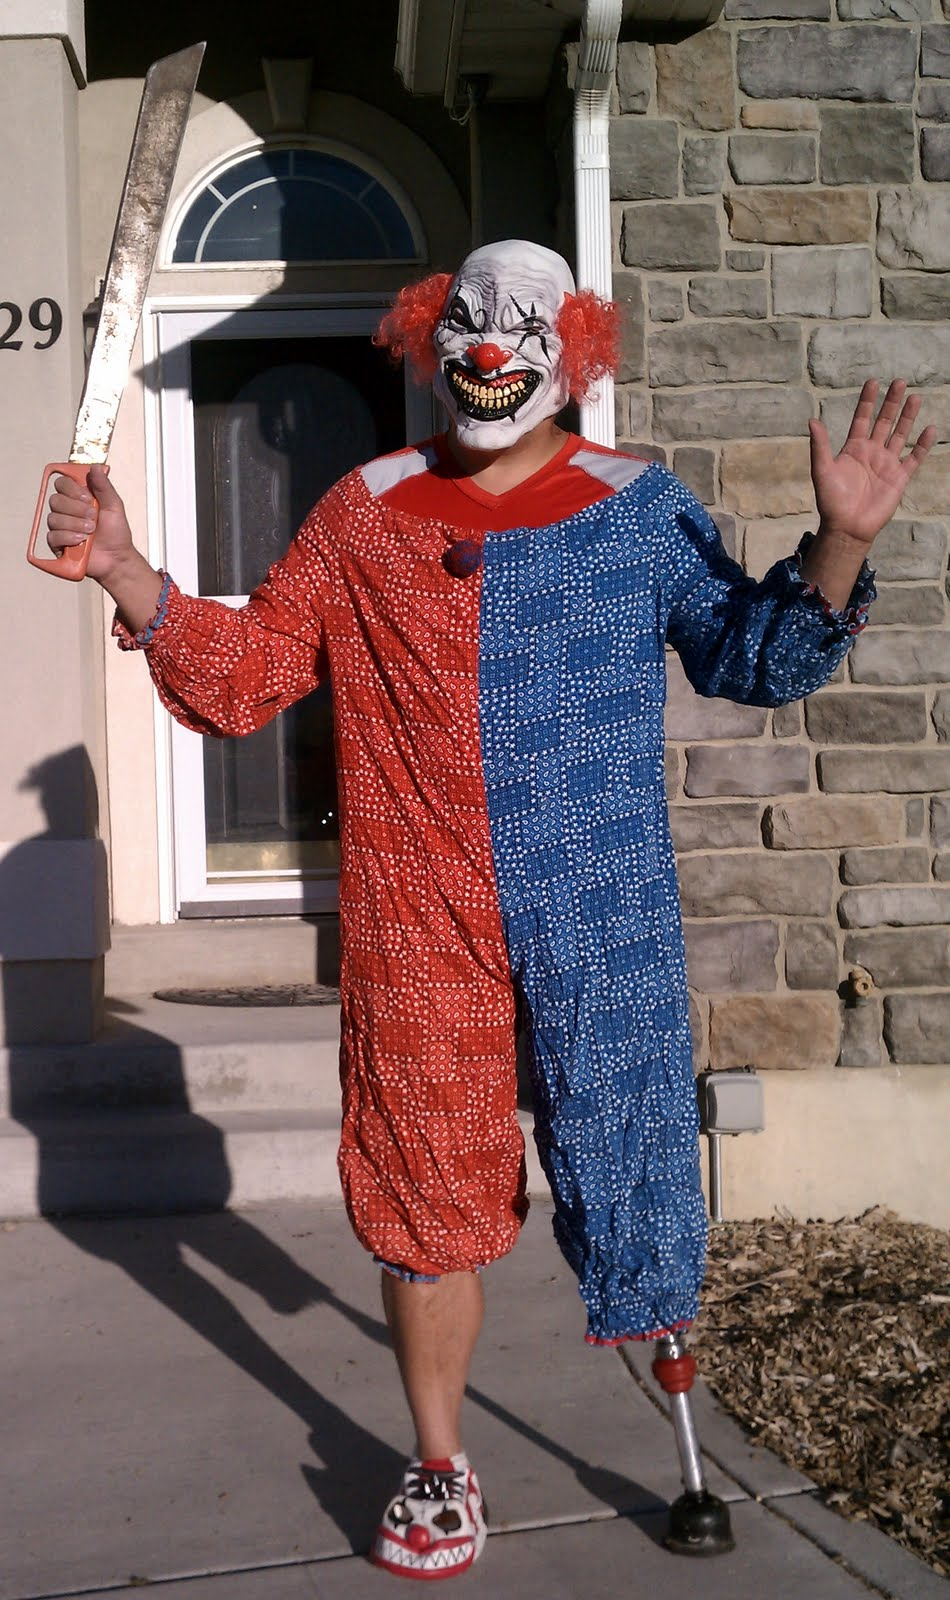 Dale as...a truely terrifying clown